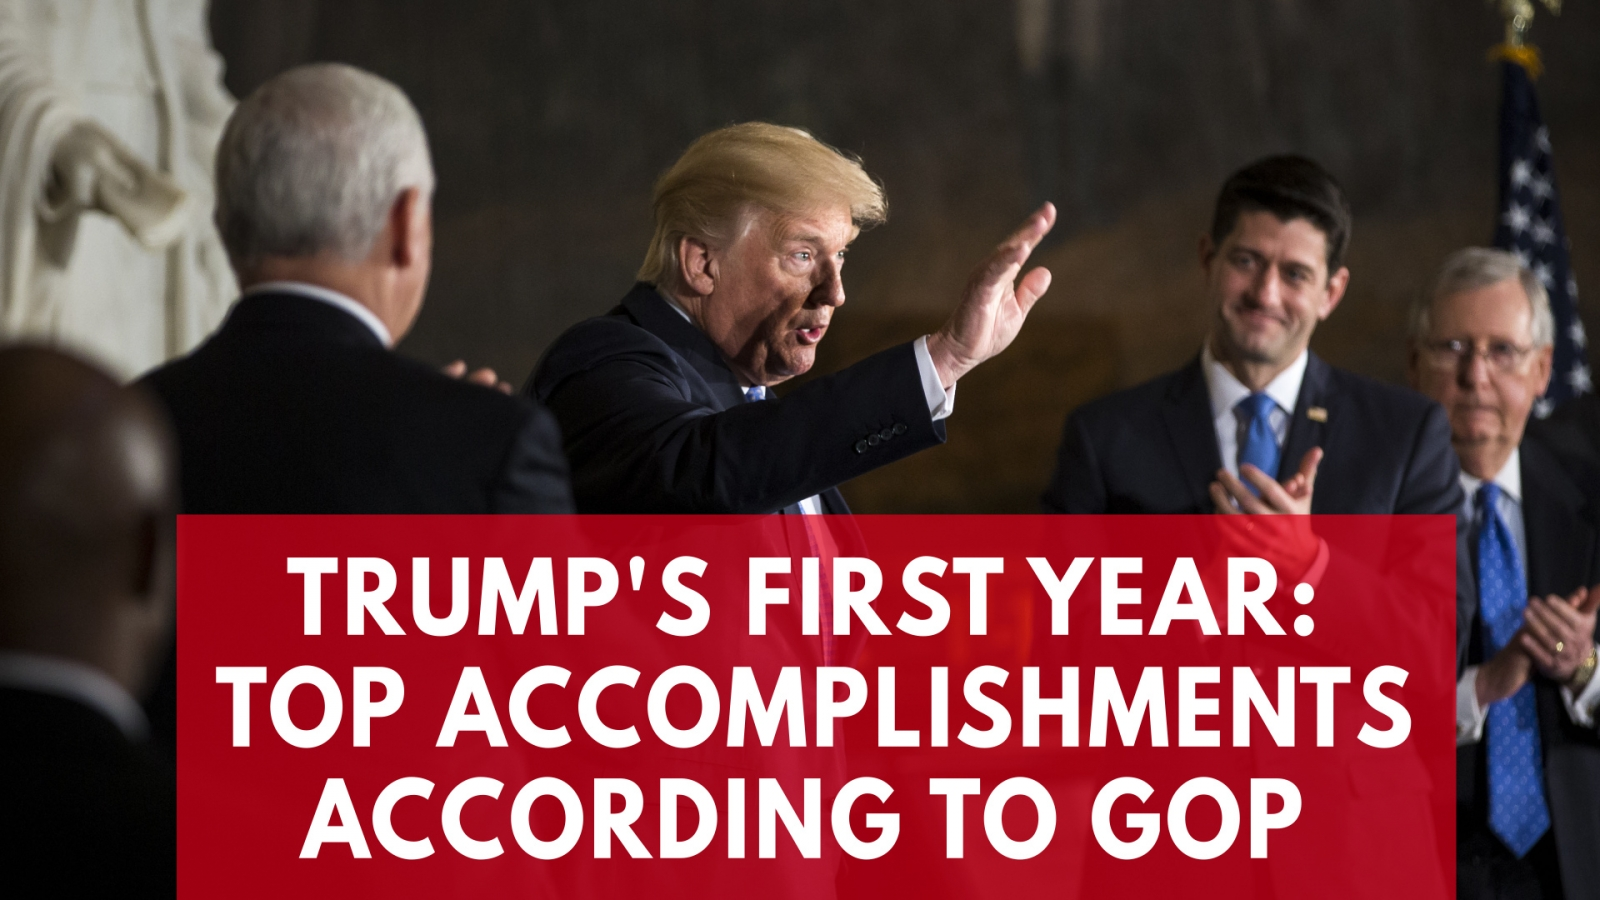 Donald Trump's top accomplishments in his first year as president